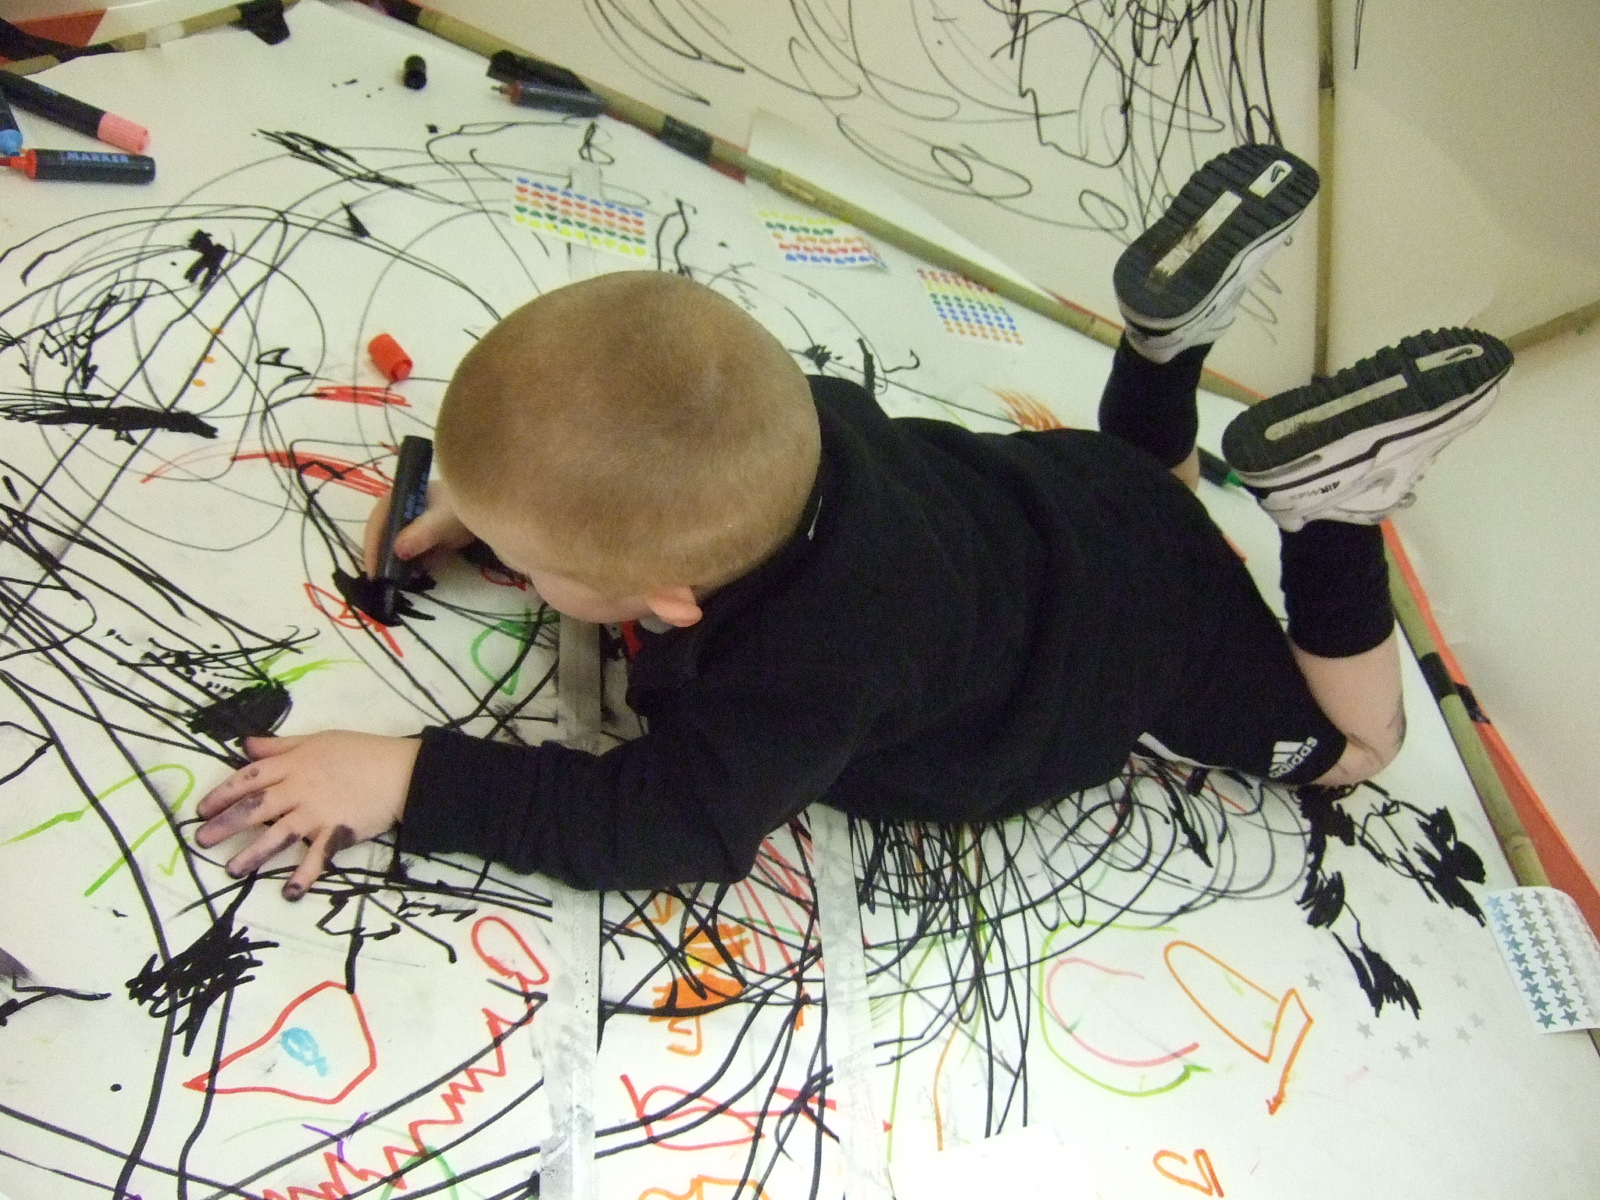 boy creating art on the floor